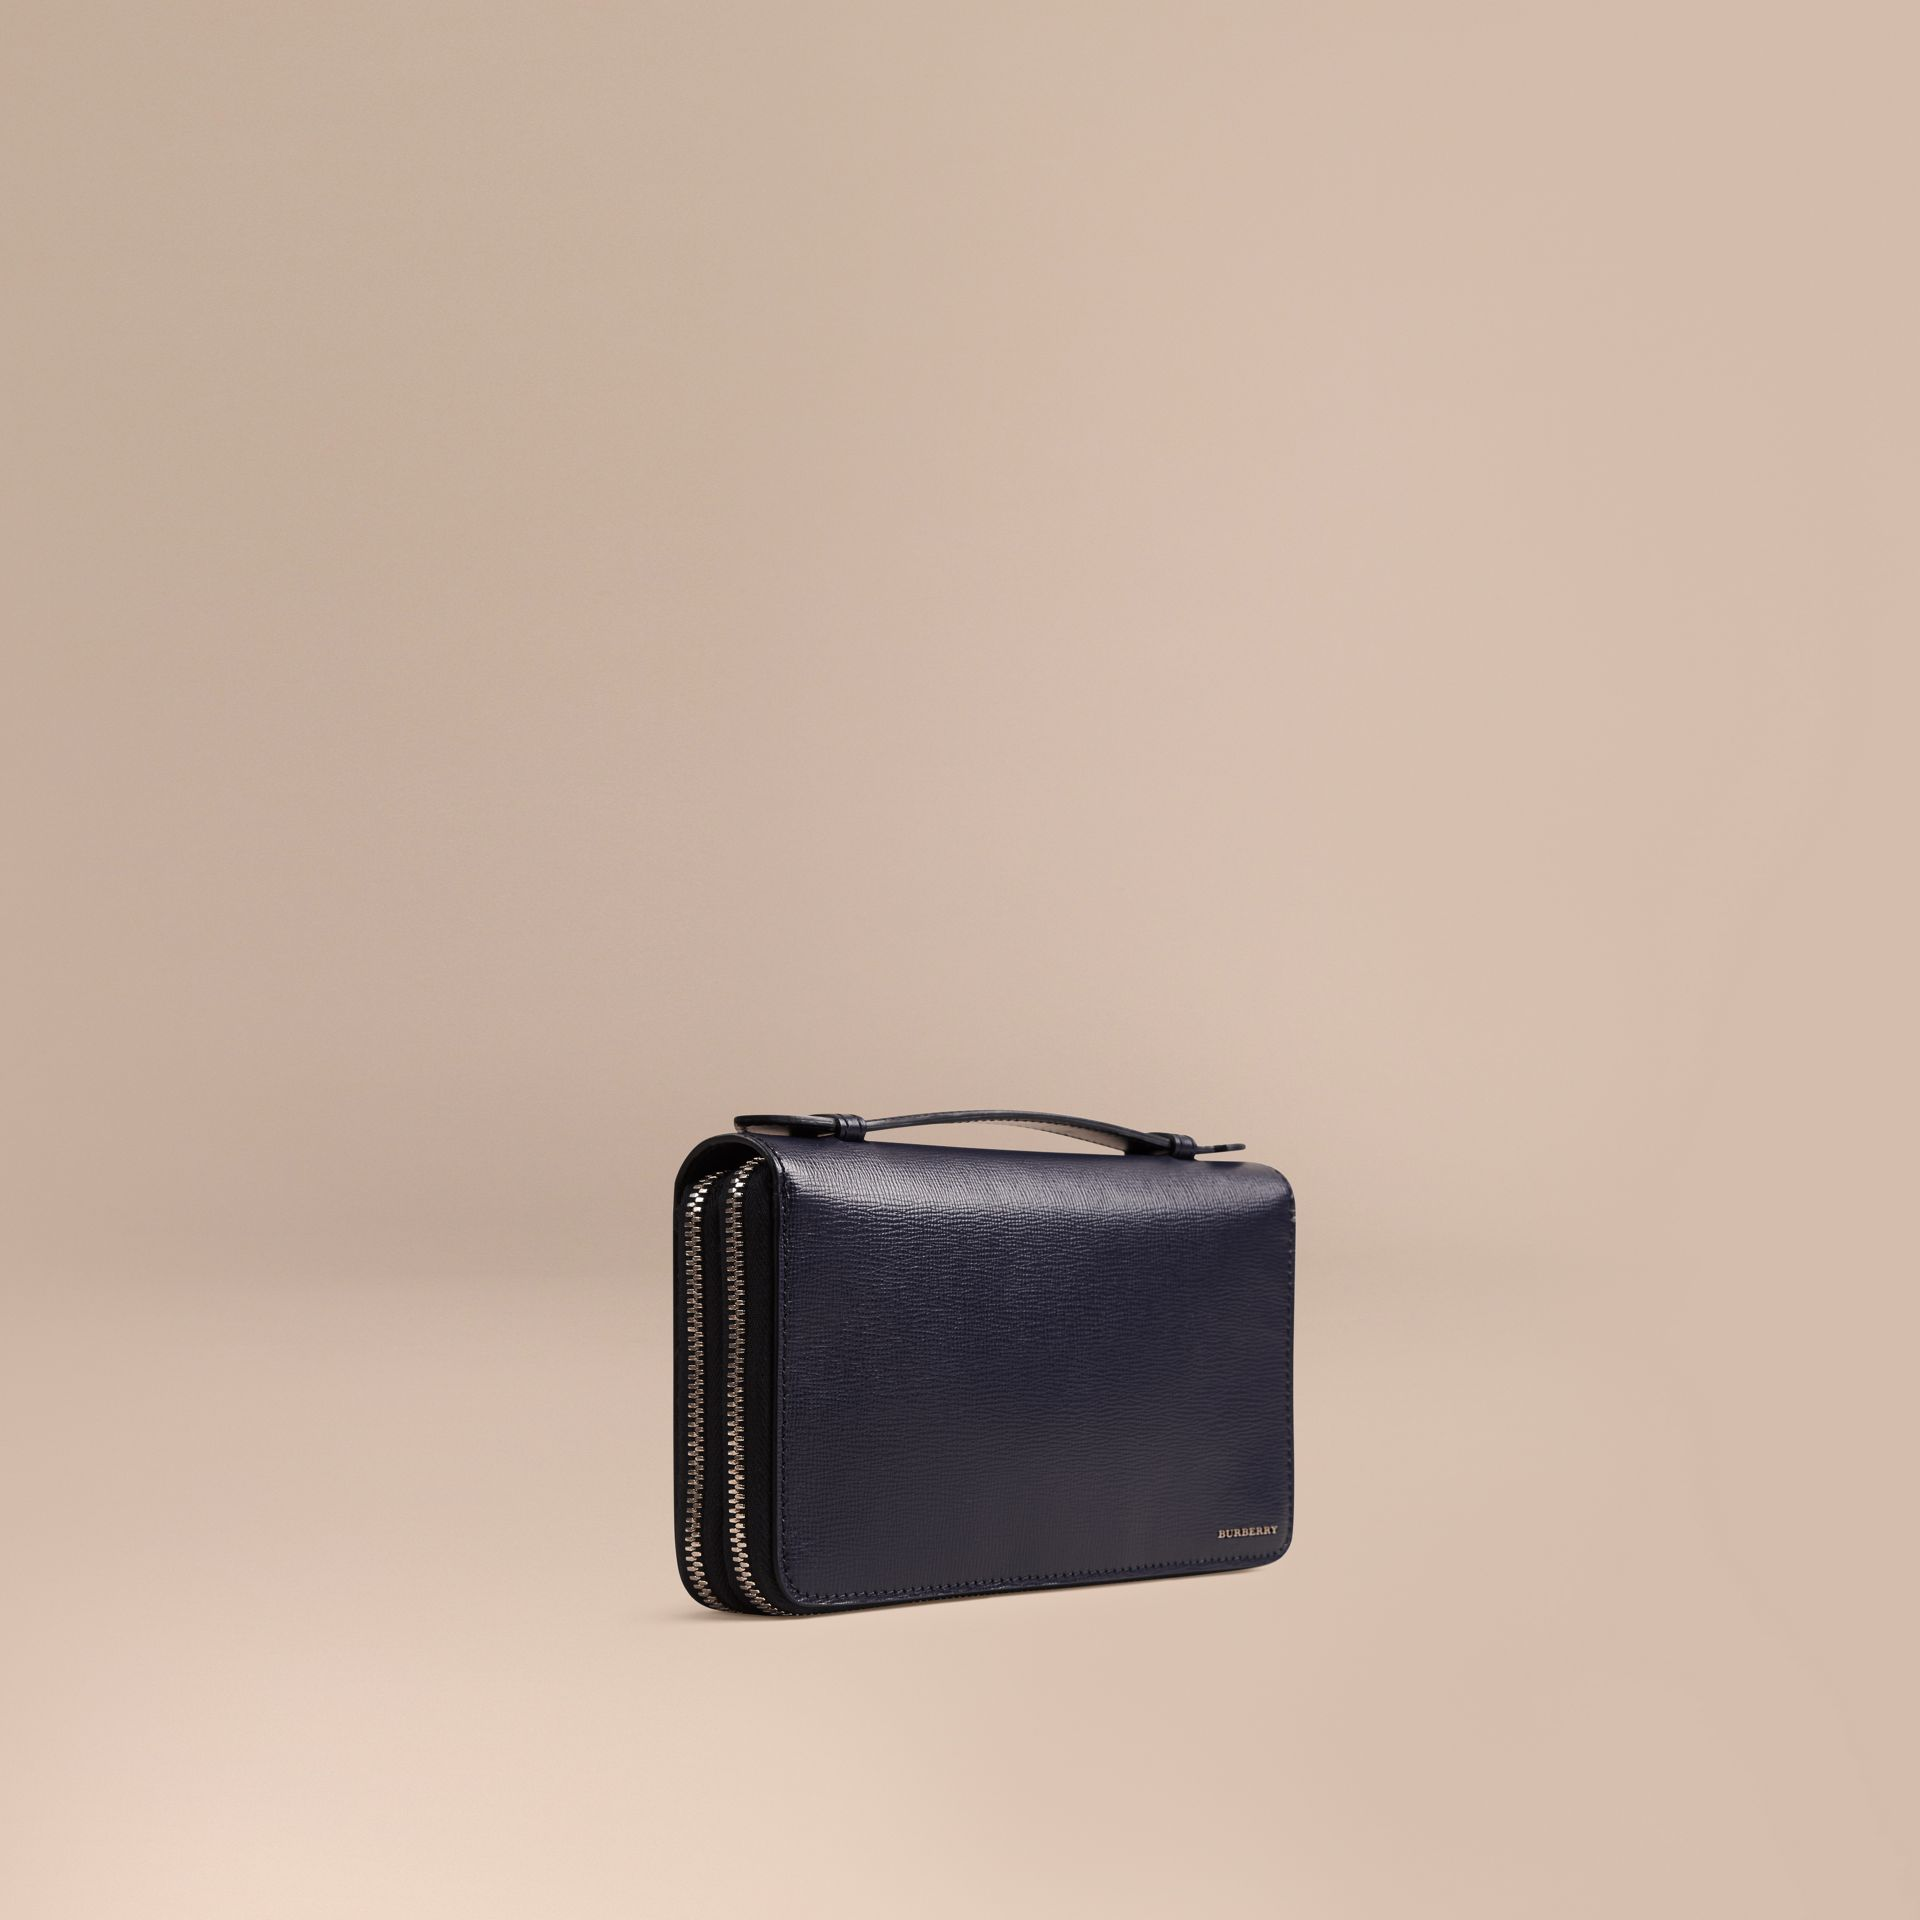 Dark navy London Leather Travel Wallet Dark Navy - gallery image 1